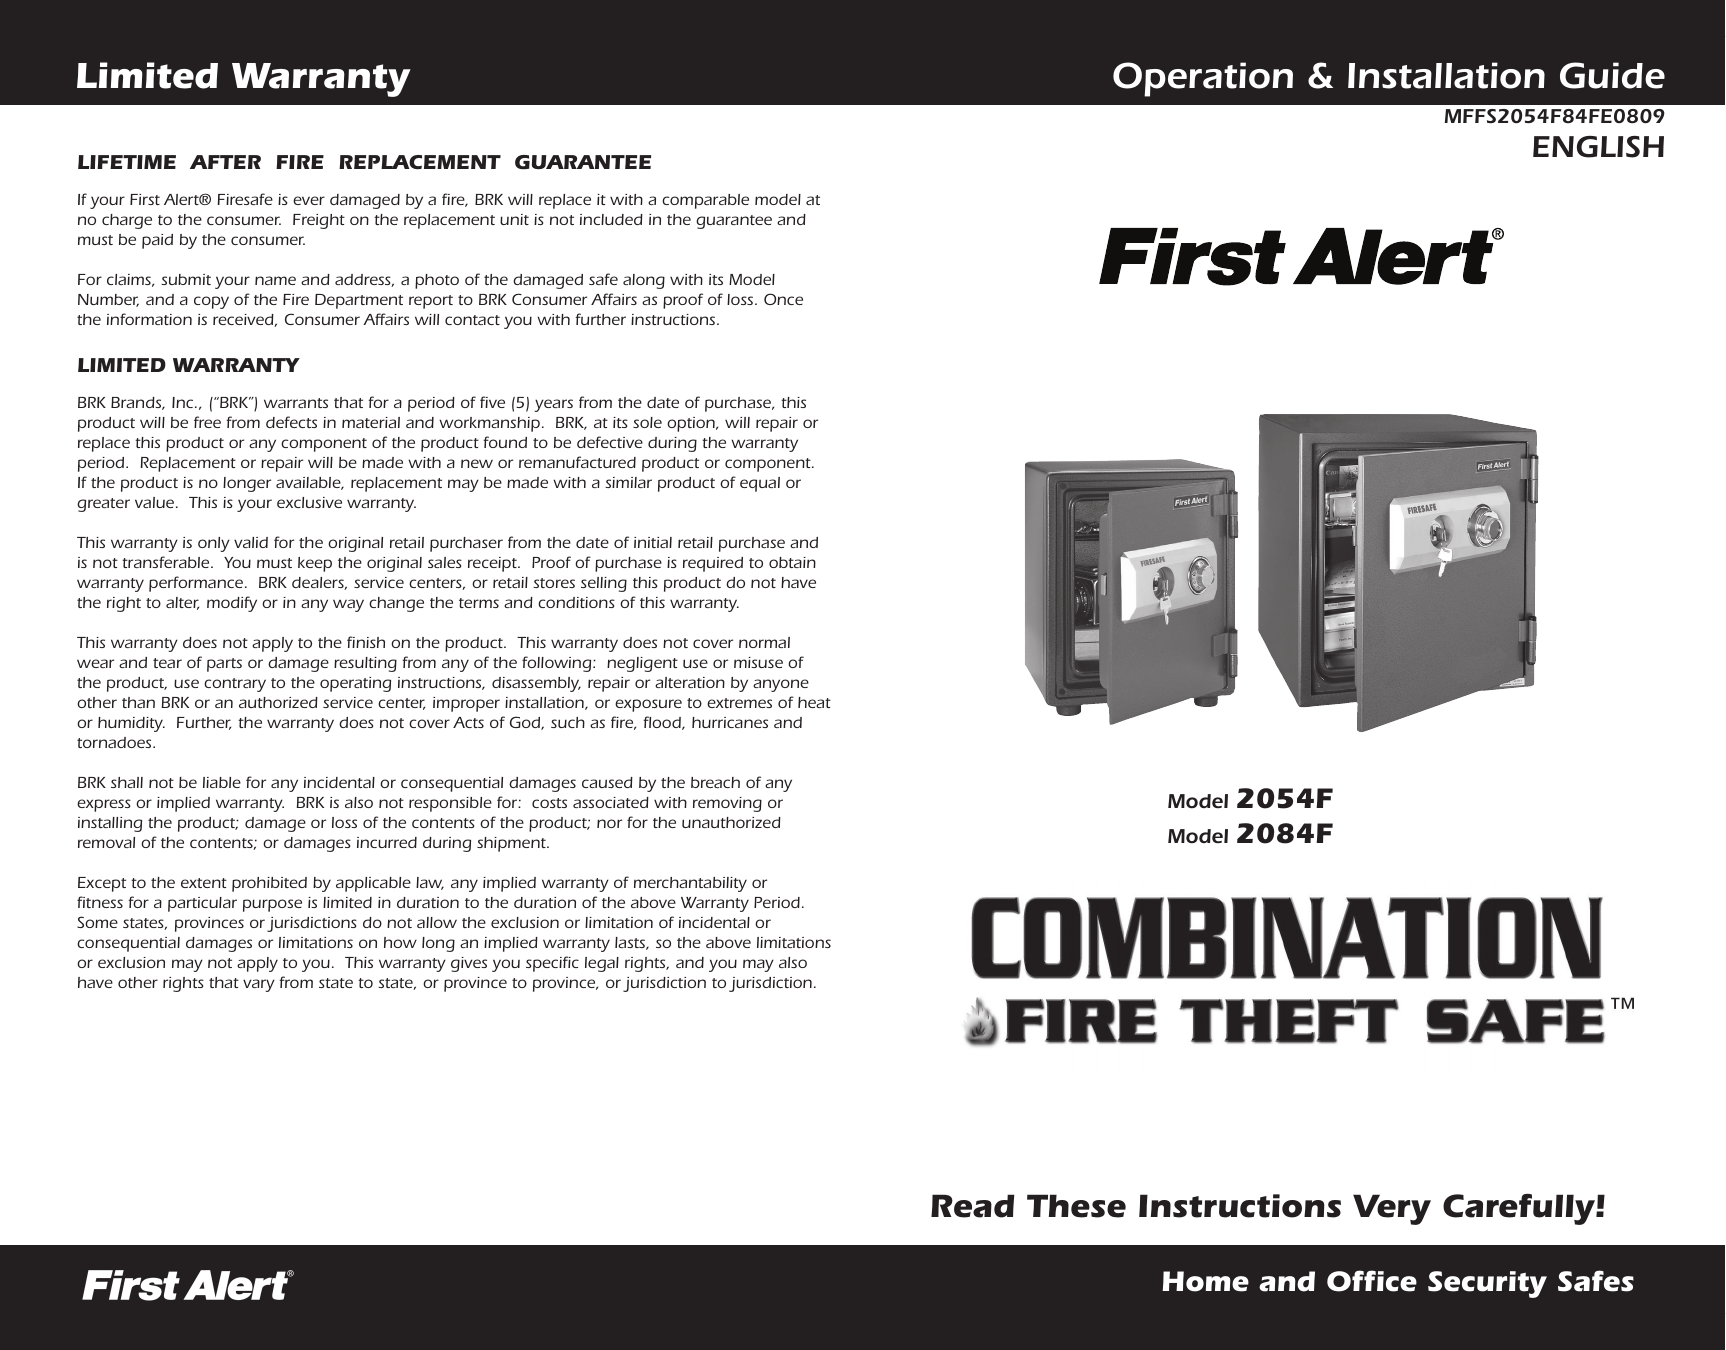 First Alert Fire Theft Safe 2054f Users Manual